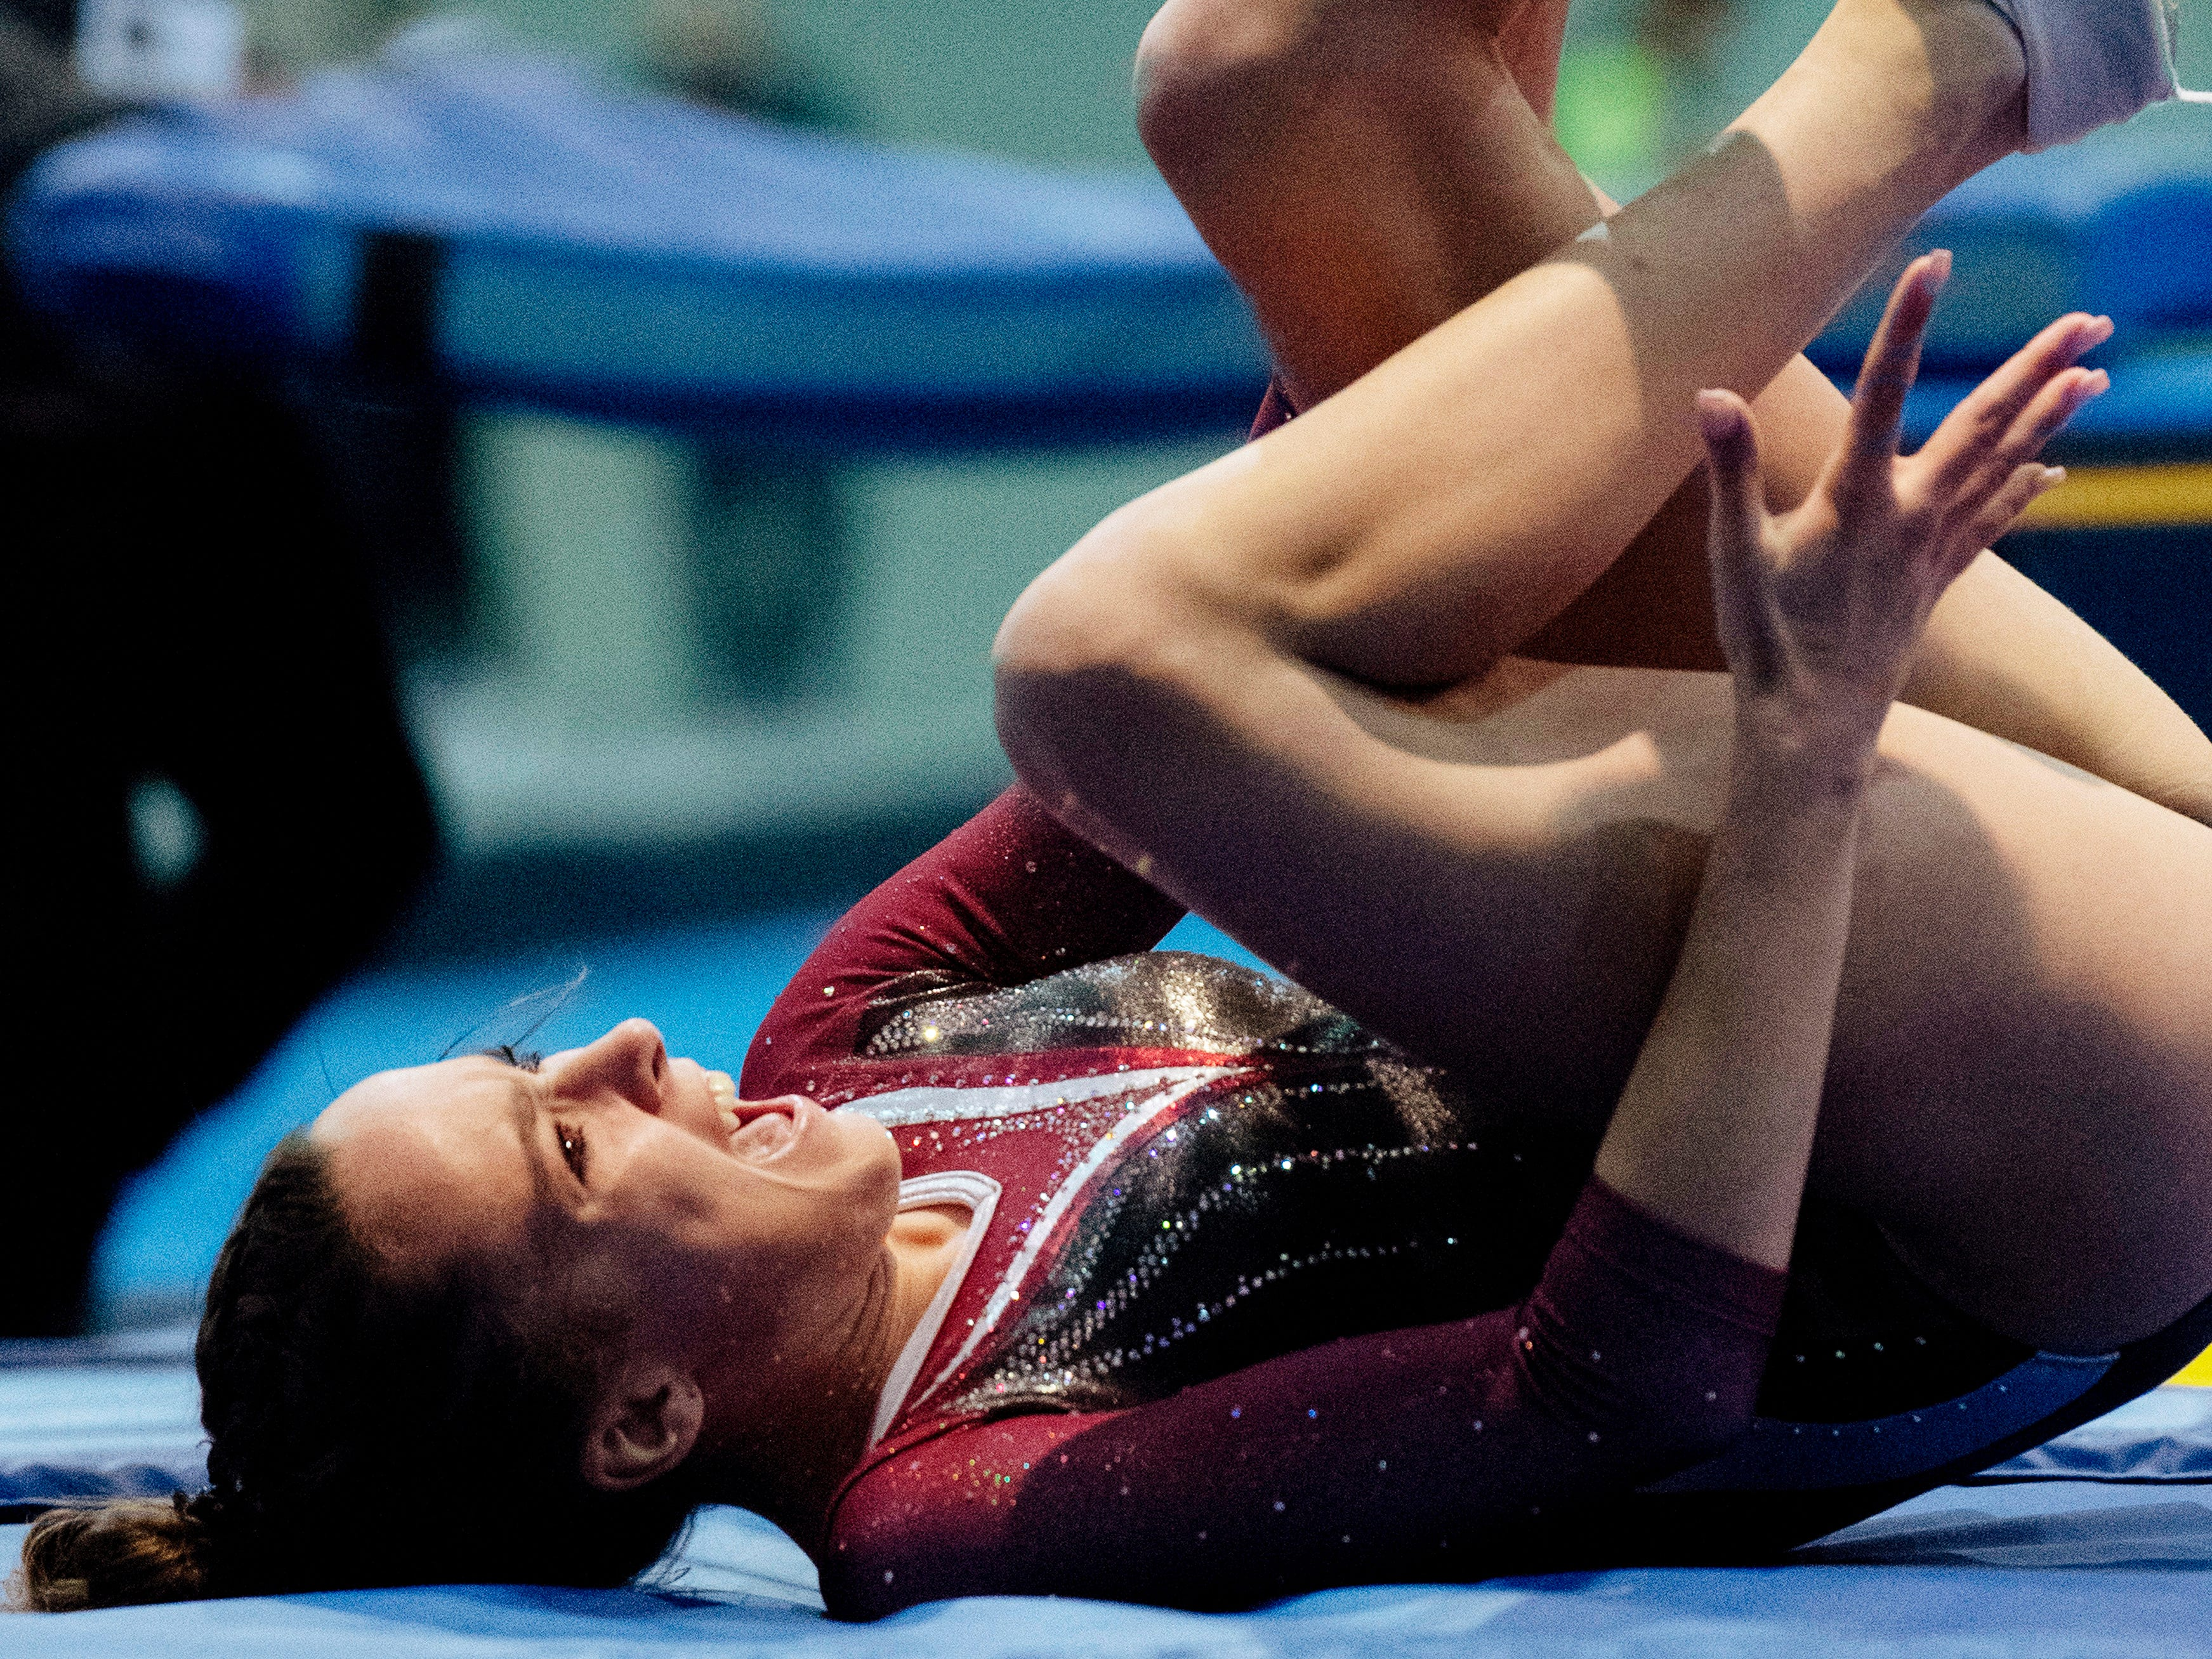 Central Illinois Athletics' Ava Pollard, 14, grabs for her ankle after landing wrong on her double-mini trampoline attempt during a at the VIP Classic at the Old National Events Plaza Friday afternoon.